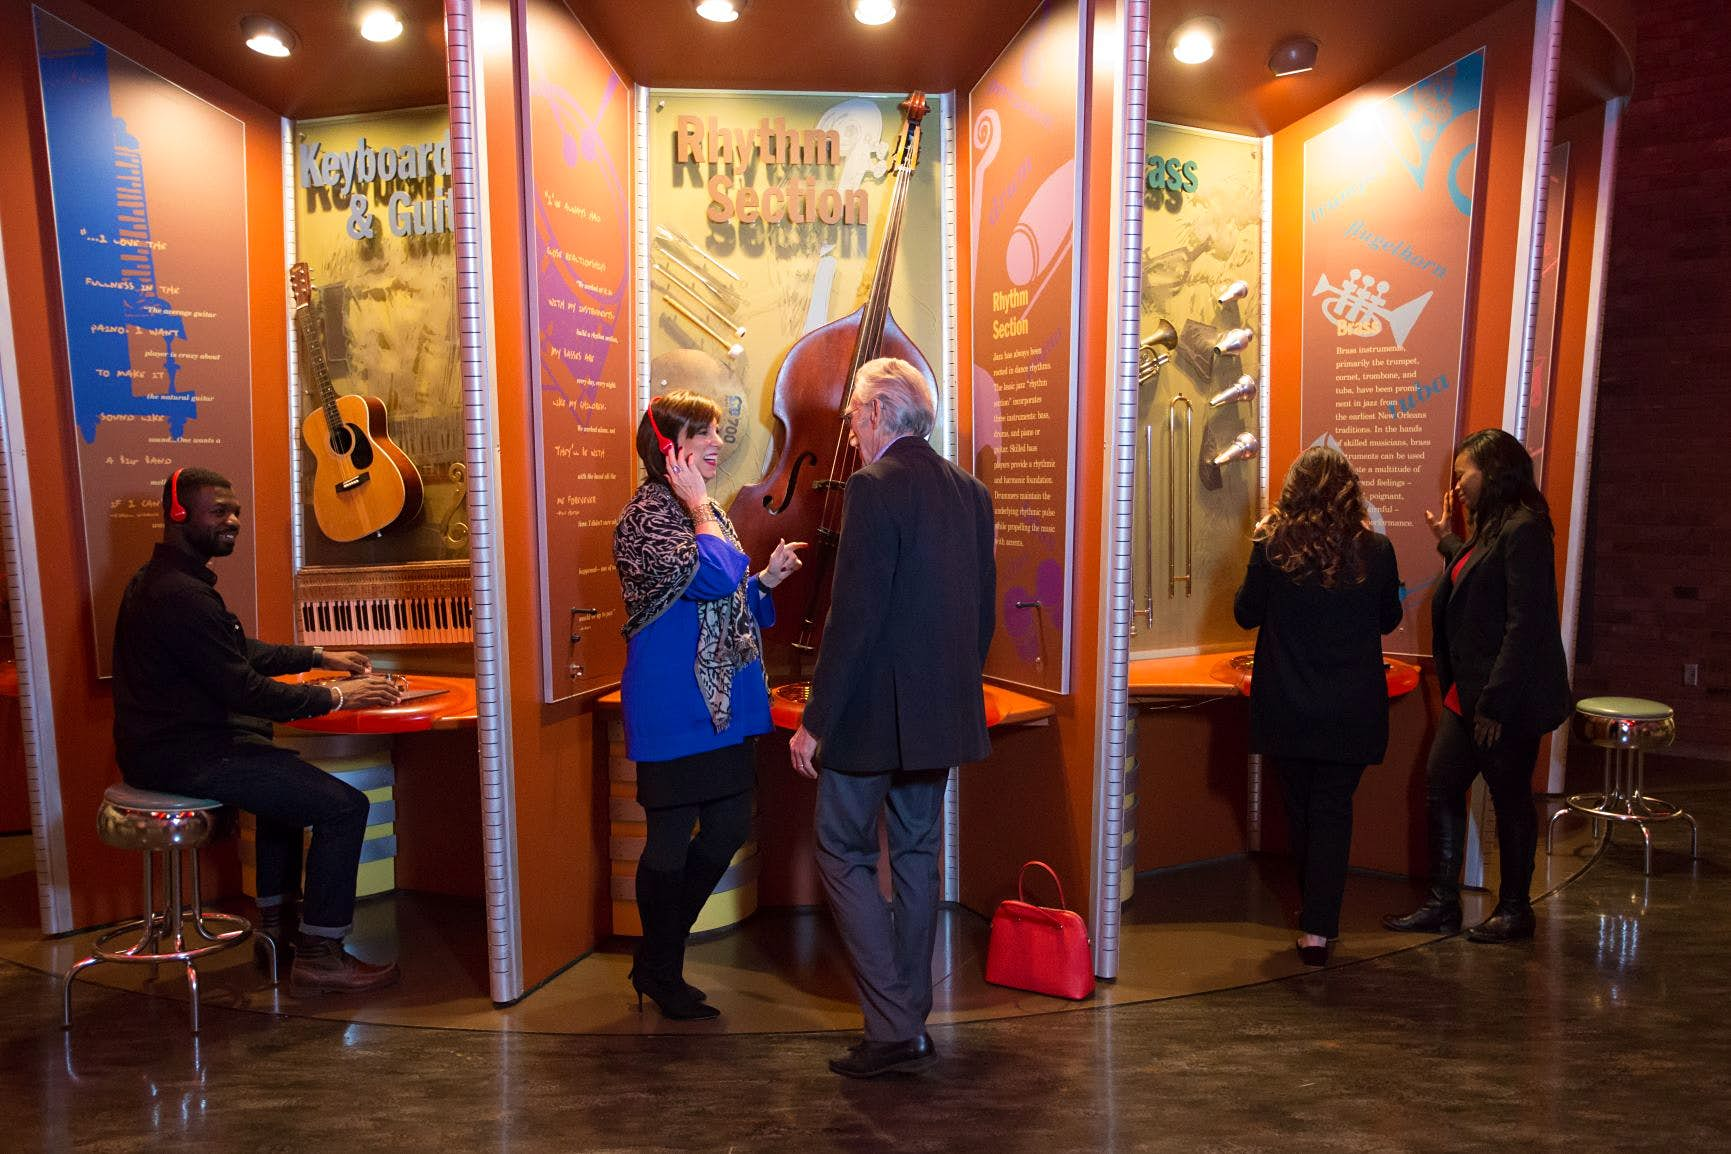 People stand listening to headphones inside the American Jazz Museum. USA museums for music lovers